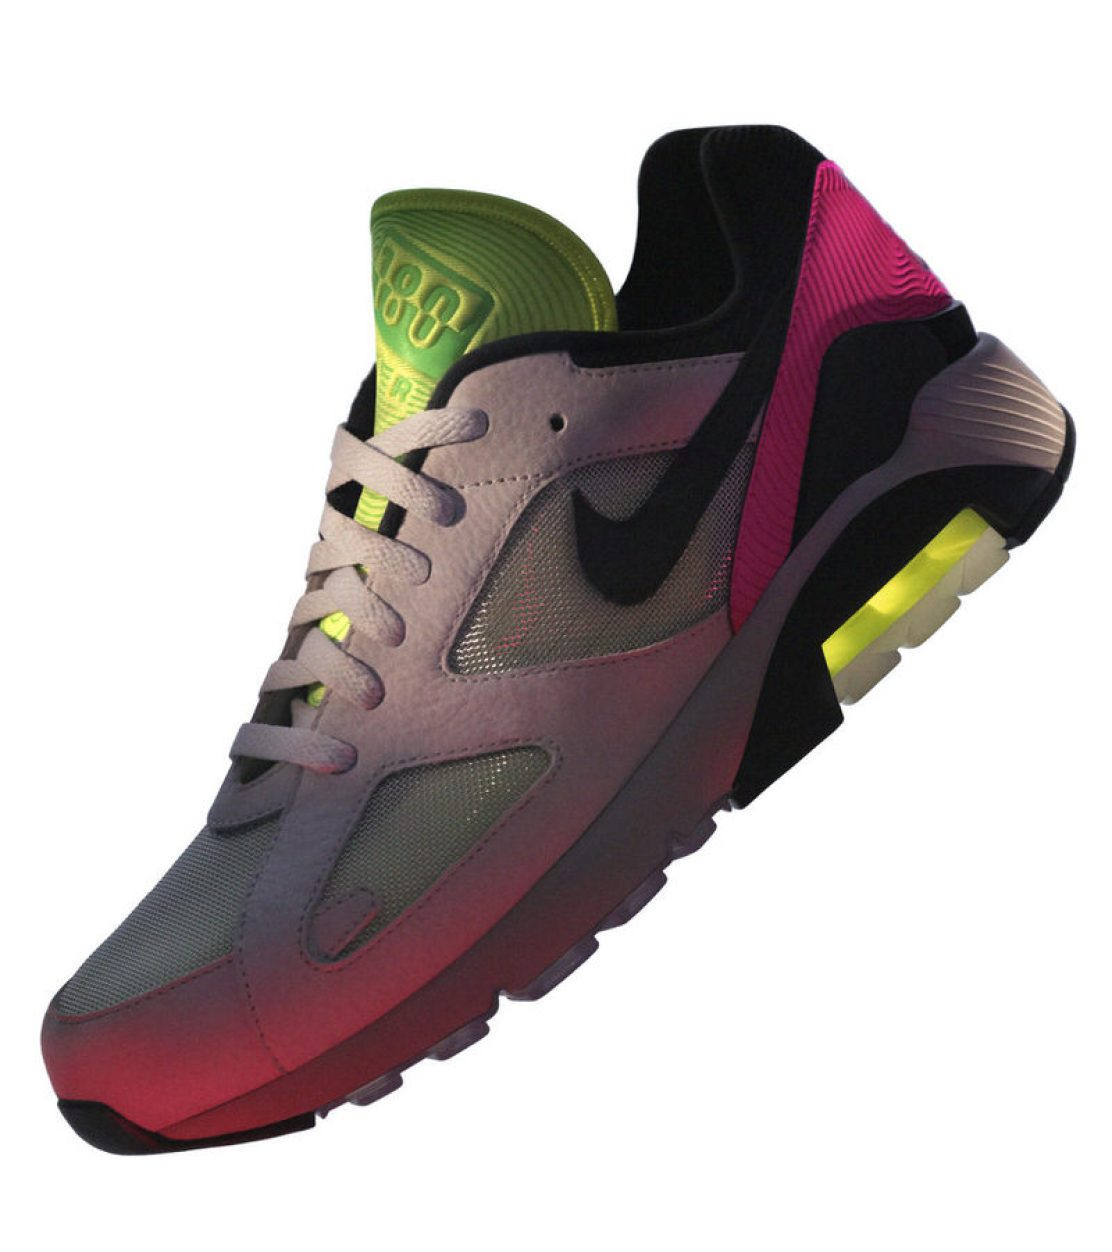 e12a322eb4 Berlin's Vibrant Nightlife Inspires Nike Air Max 180 Collaboration ...